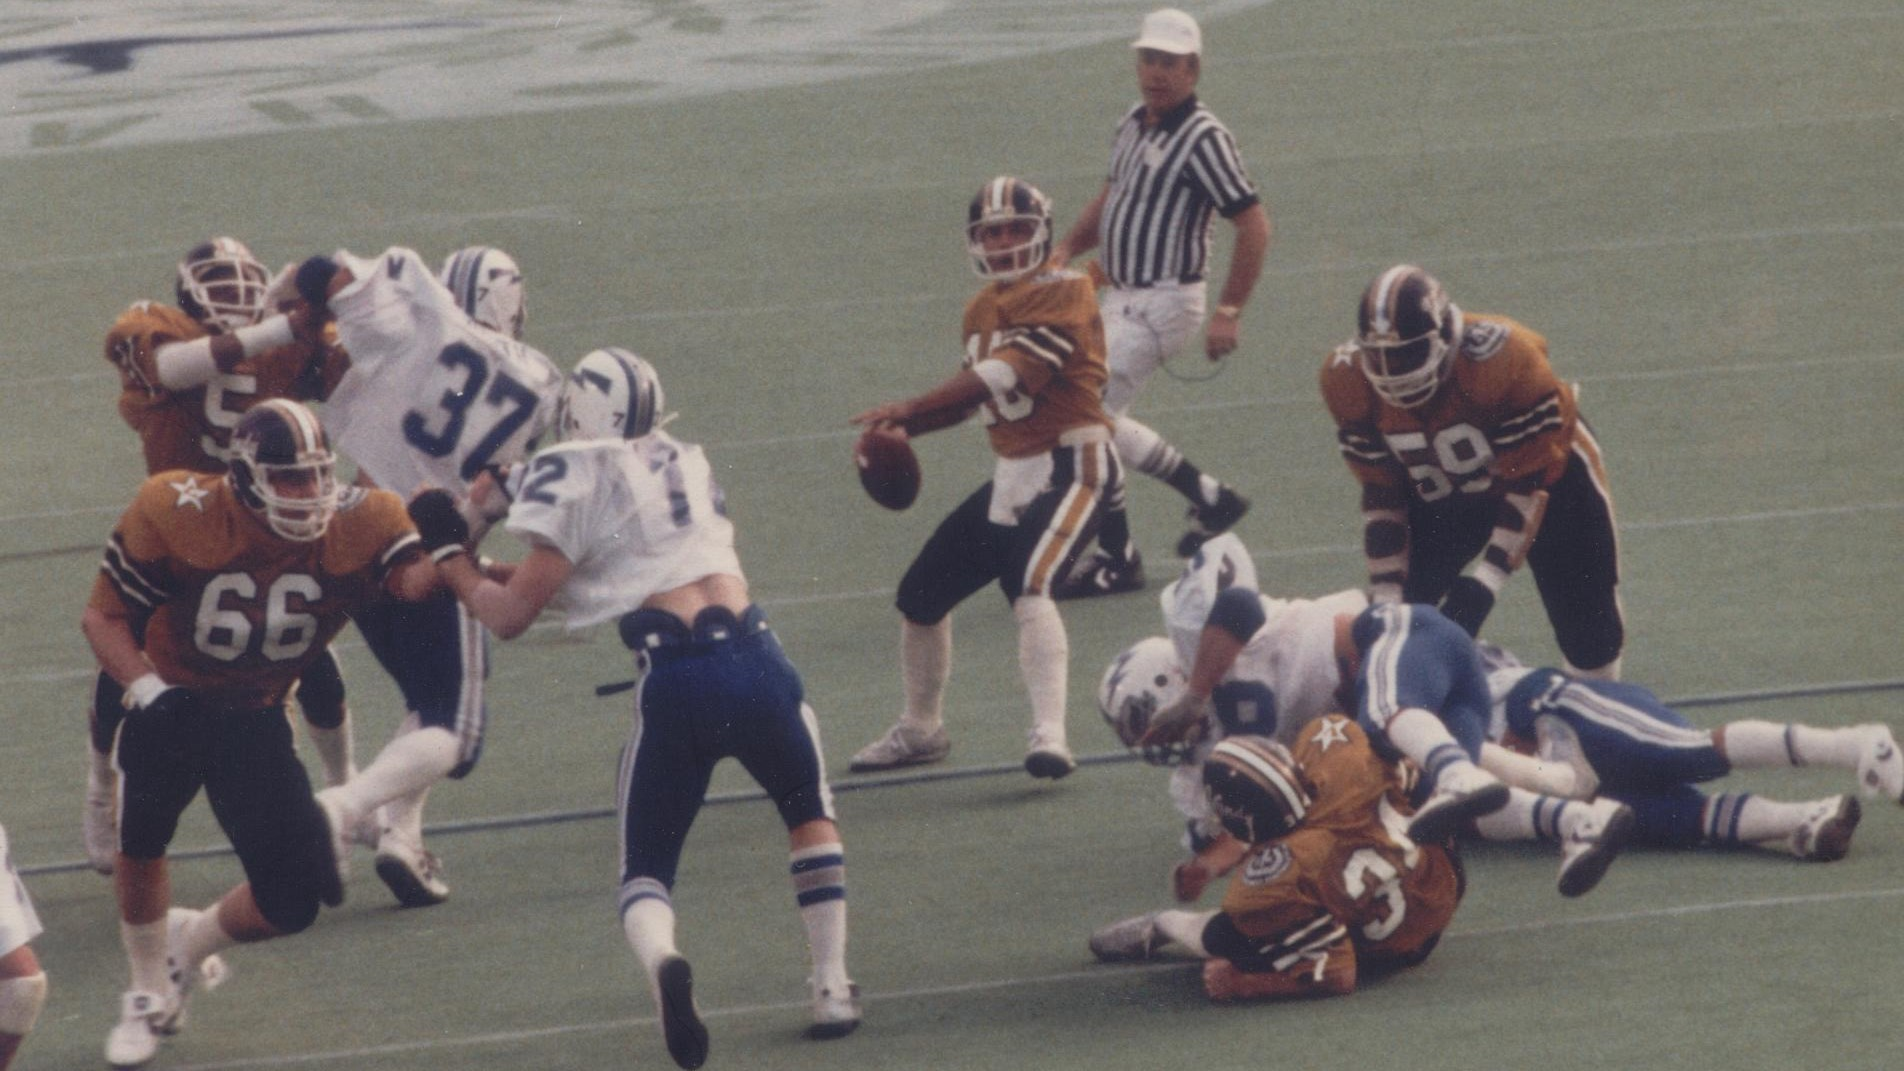 Whit Taylor 1982 Hall of Fame Bowl